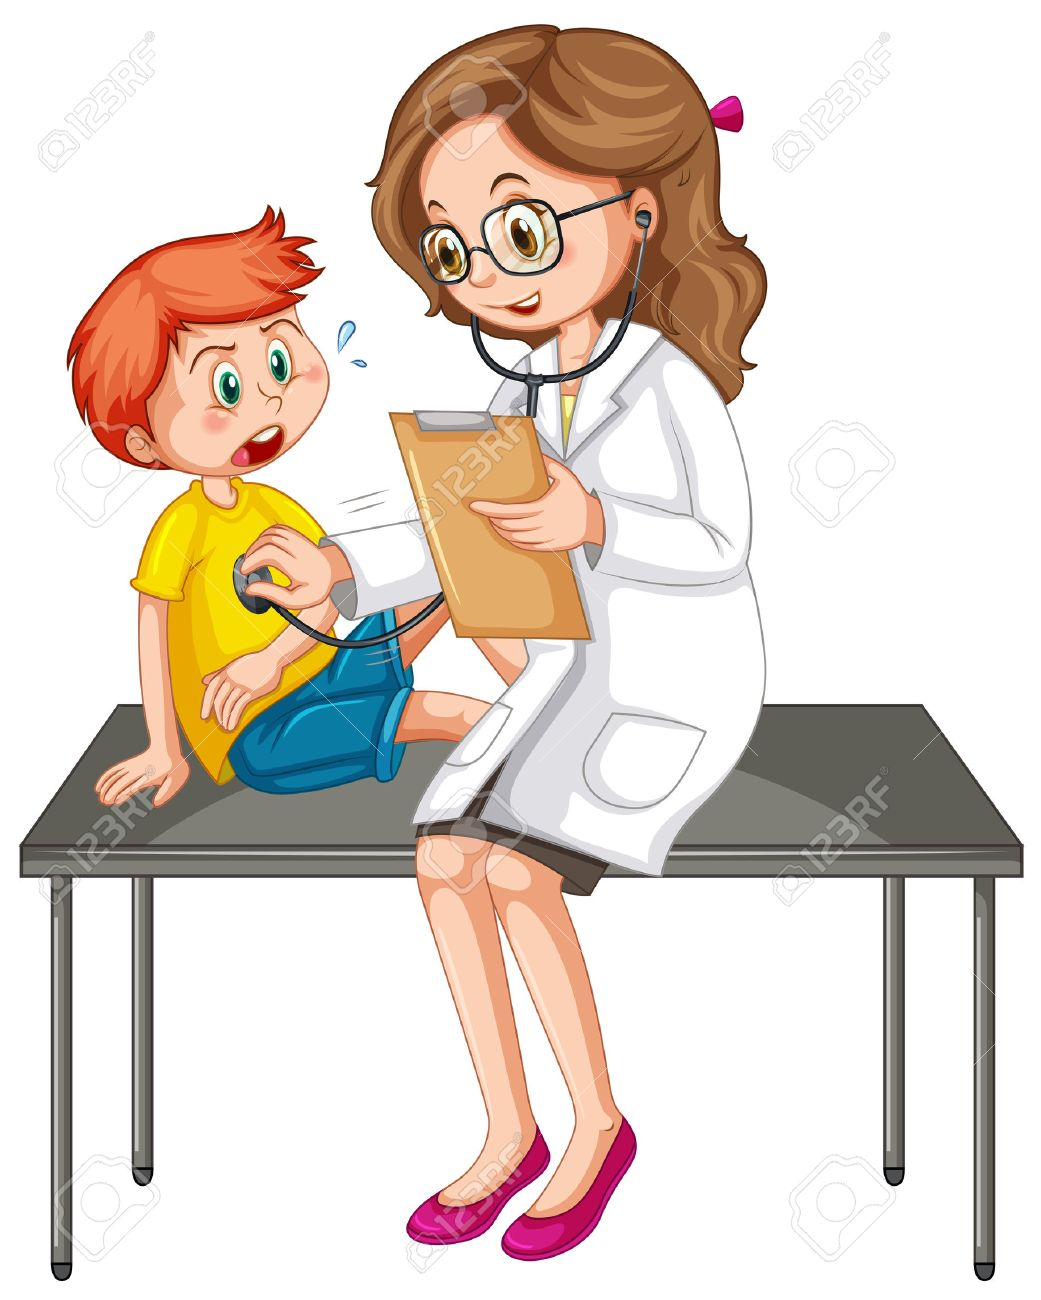 Doctor examining little boy illustration.